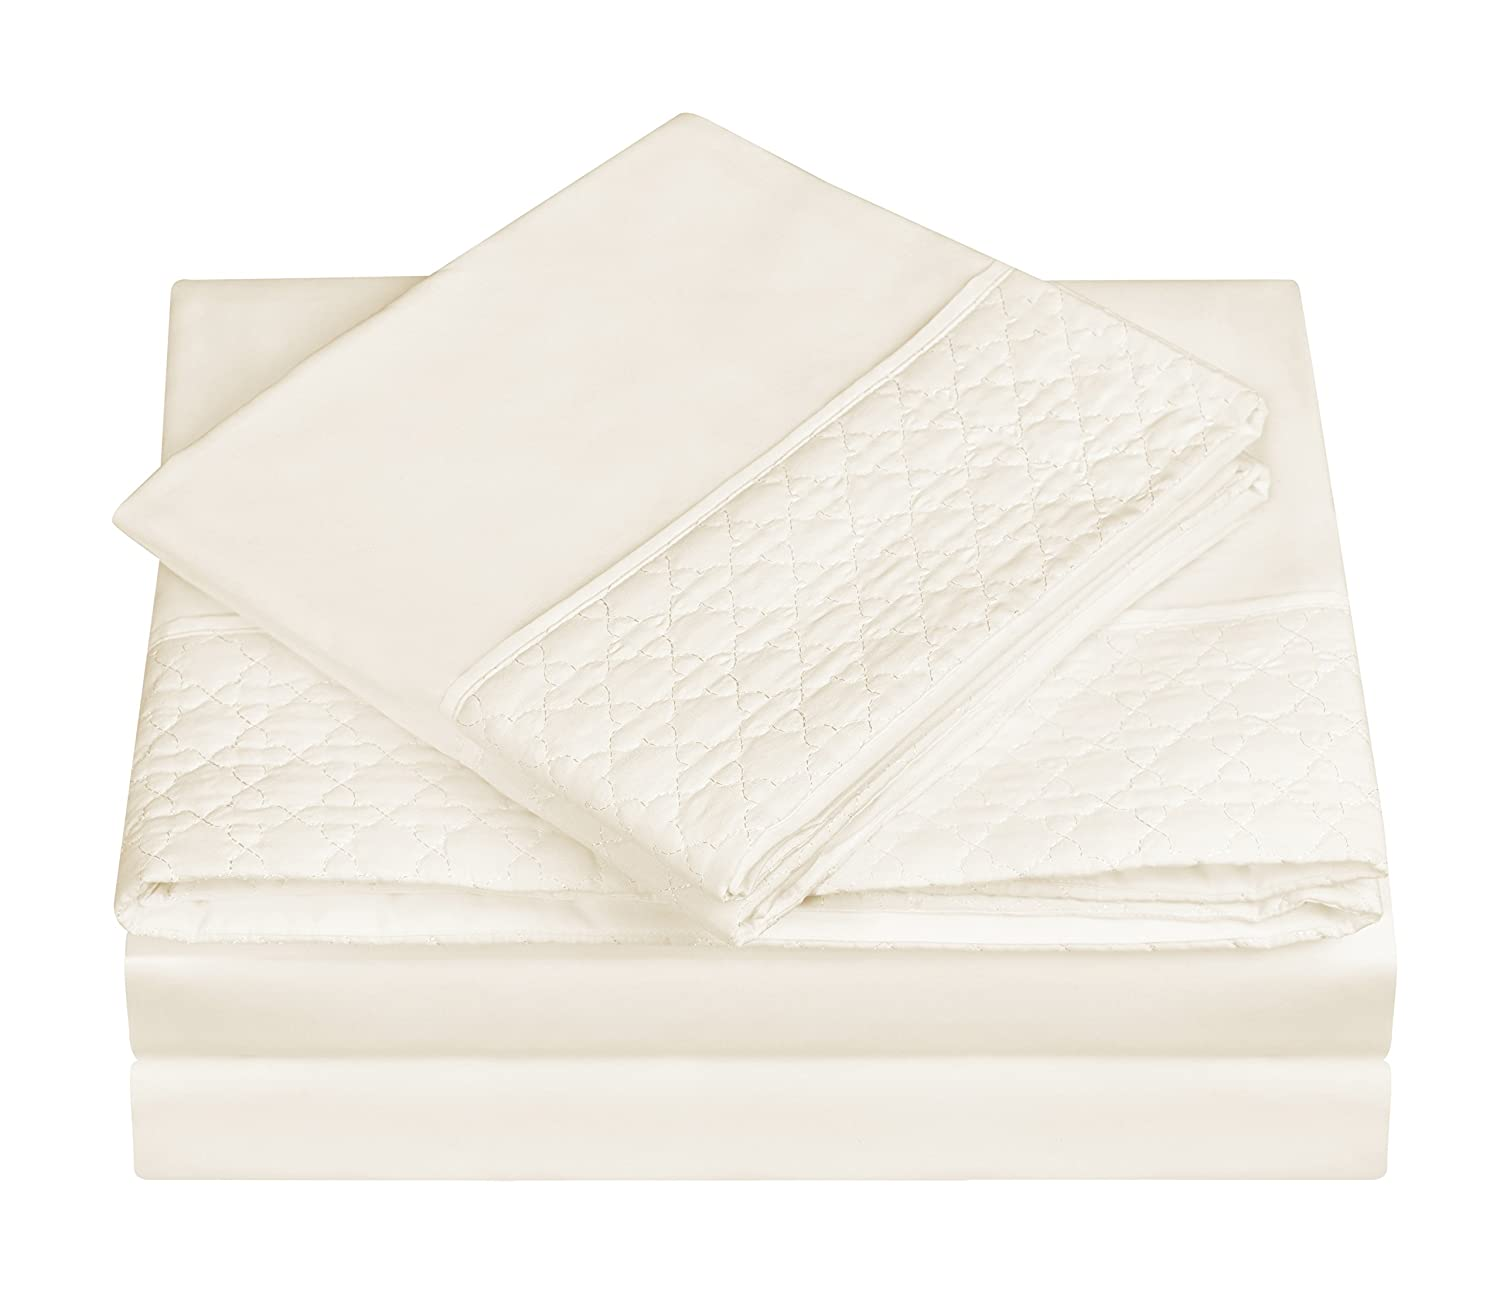 "Swift Home Quilted Hem Easy Care Brushed Microfiber Bed Sheet Set, Soft & Durable. Hypoallergenic, Wrinkle & Fade Resistant. Quilted 4"" Design on Flat Sheet and Pillowcases - Queen, Ivory"